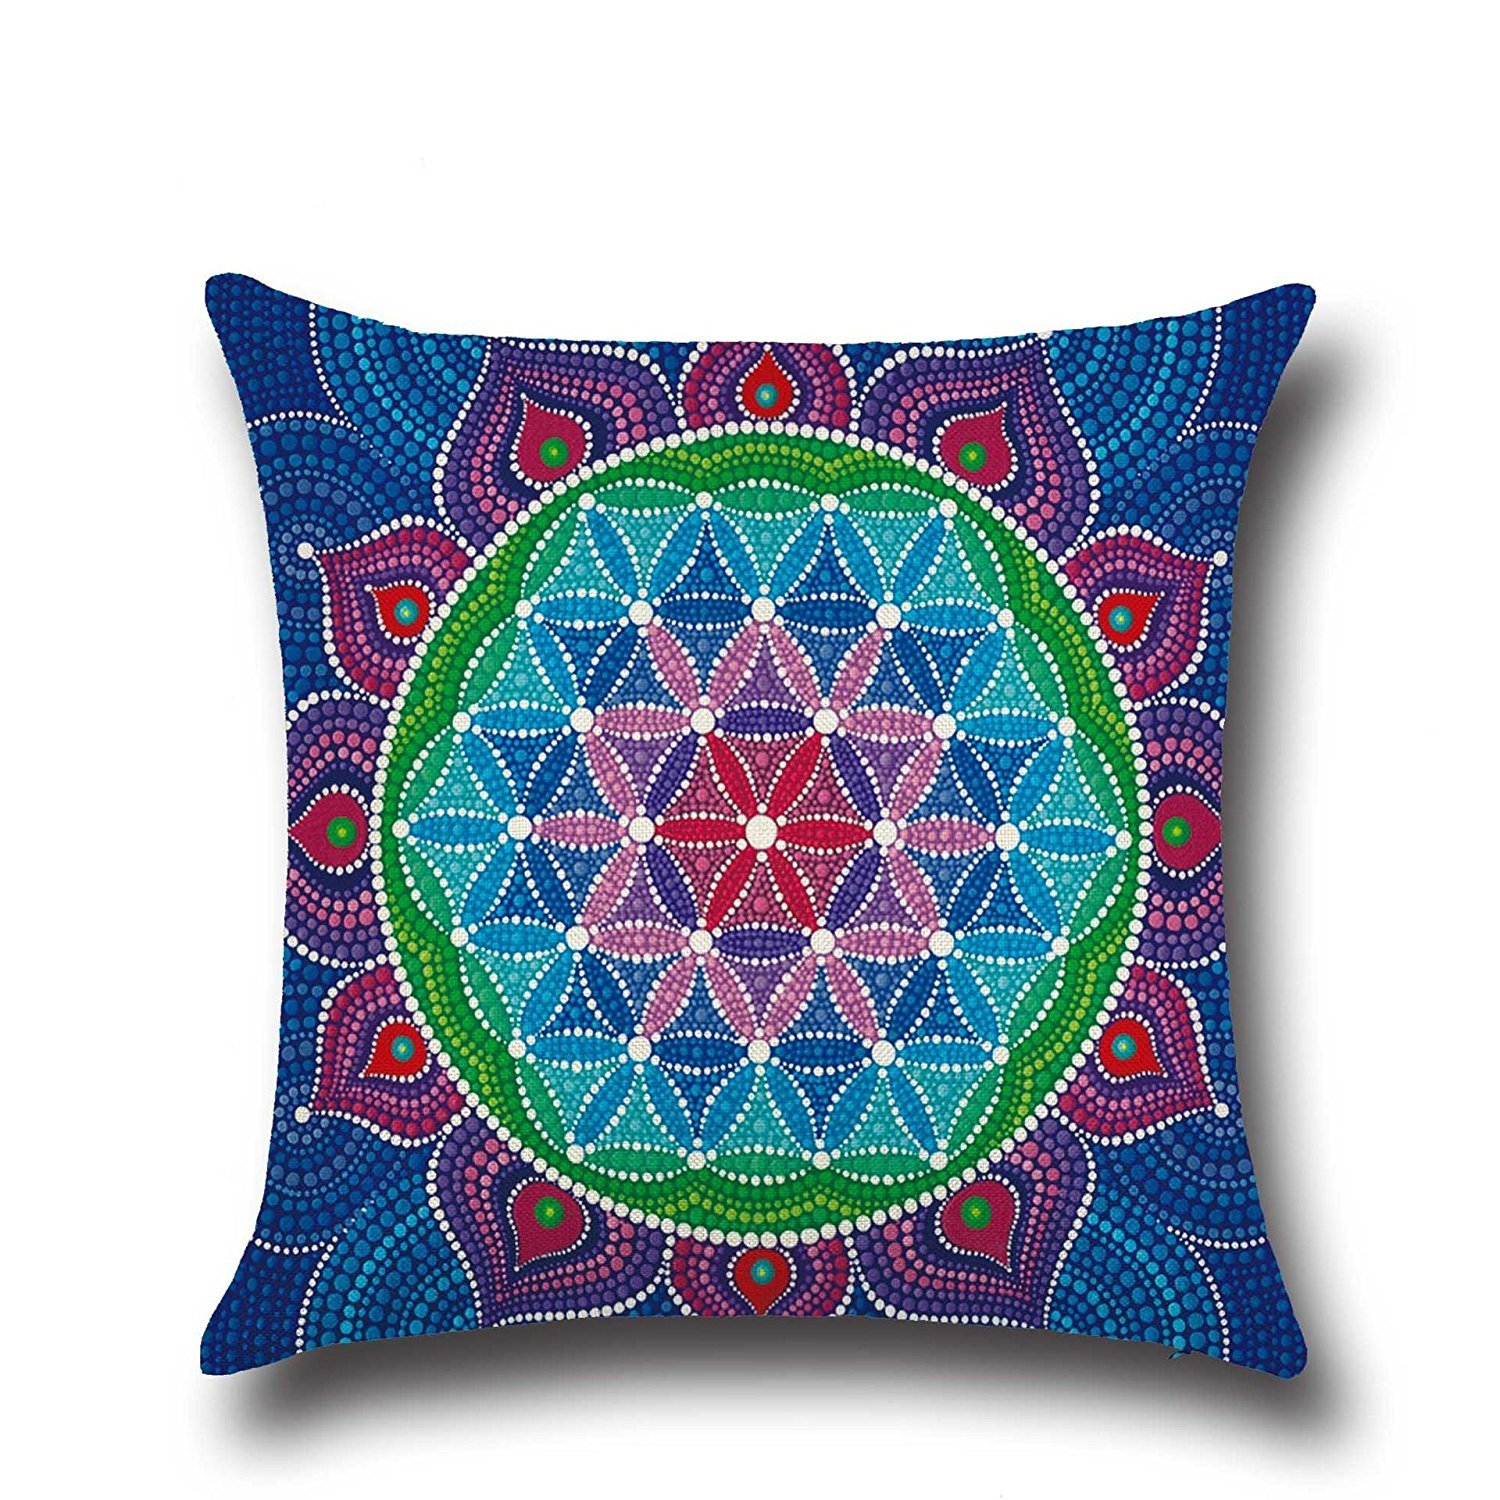 HOMEE Stylish and Fantastic Sunset Shanshui Flower-Pattern Cambodia and Thailand India Southeast Asia Style ,4545Cm,01 Pillow,02,4545cm